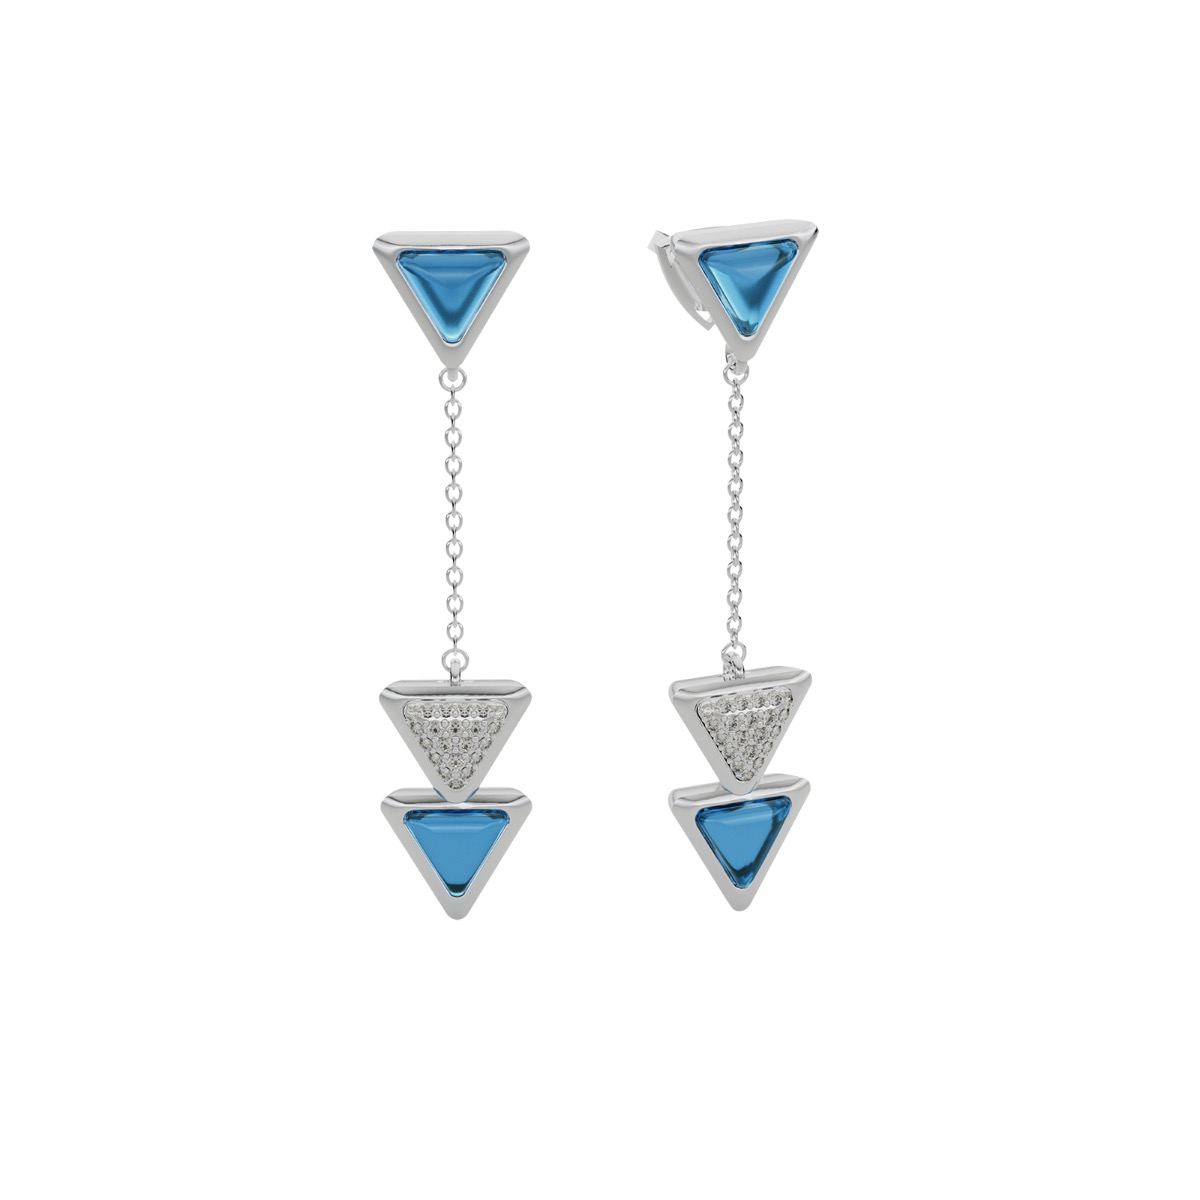 Earrings Dove Vai Forward Exquisite White Gold Blue Topaz and Diamonds